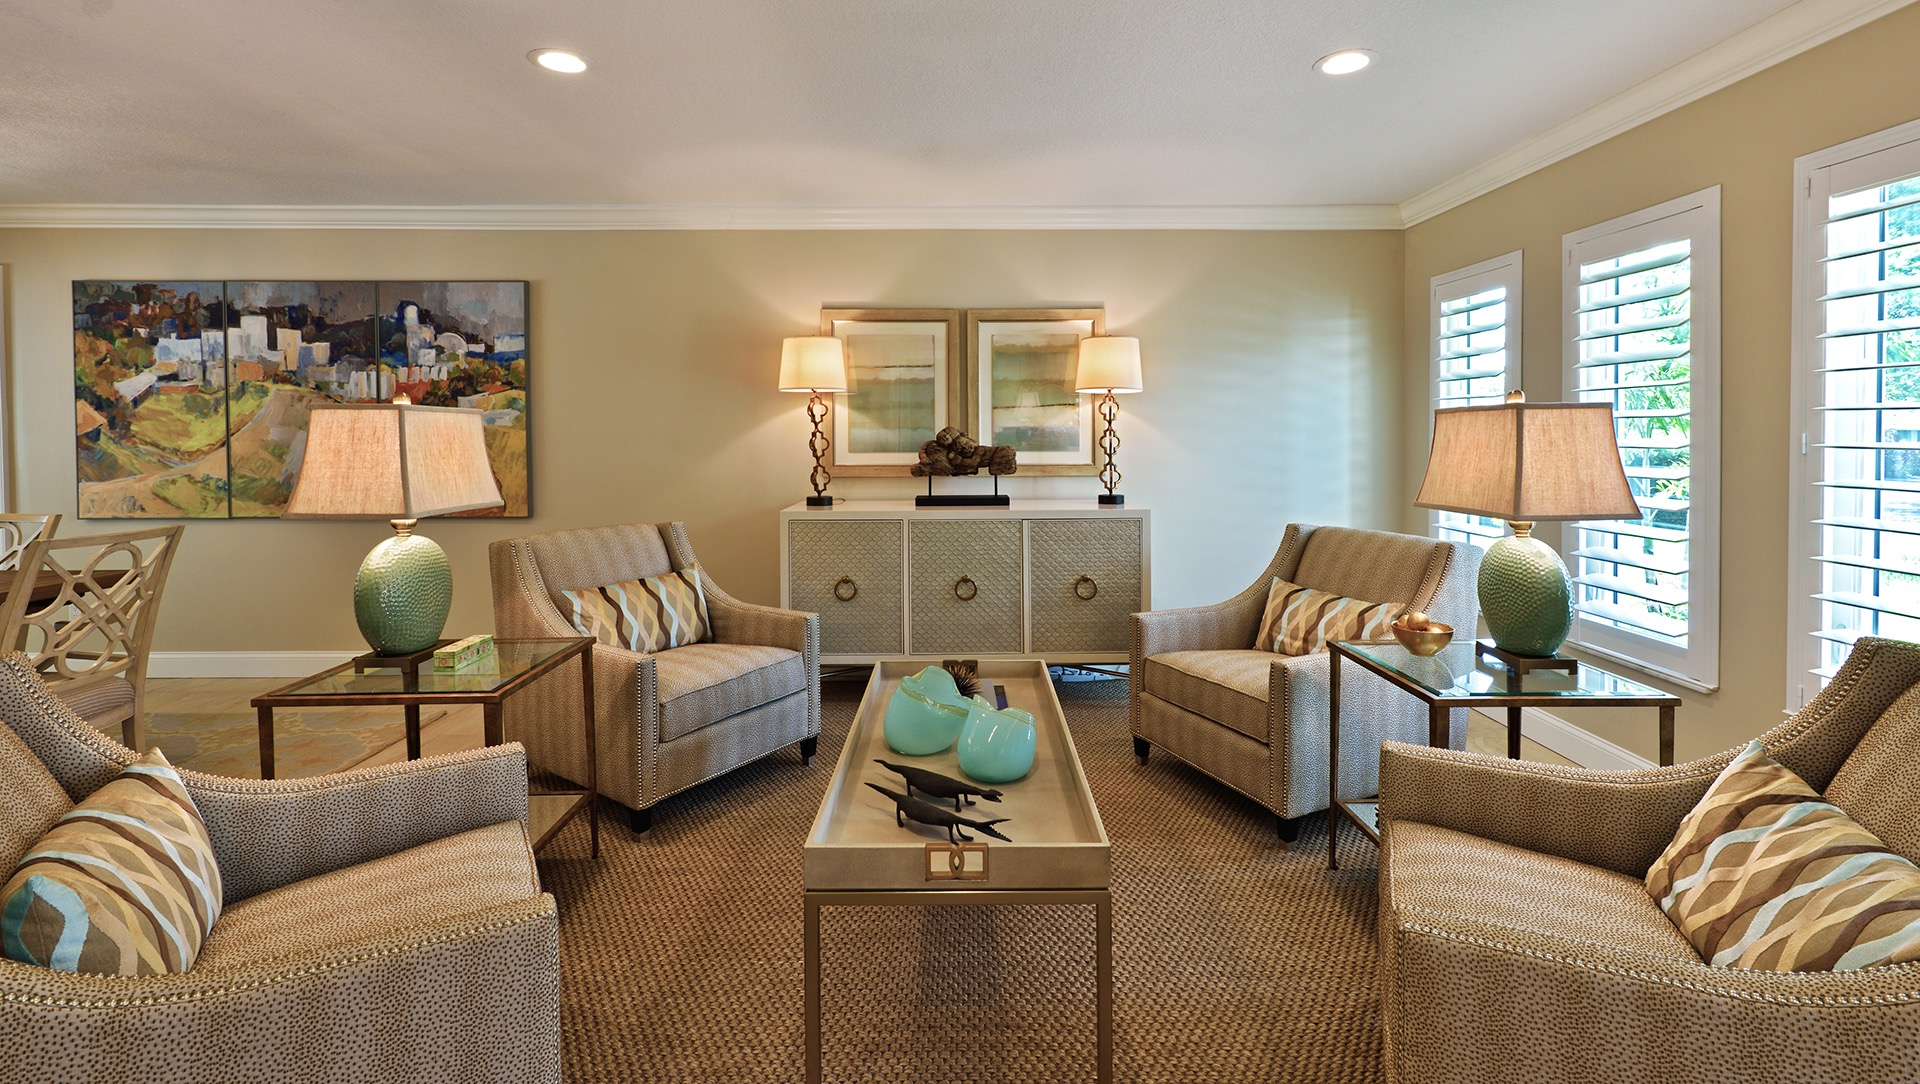 American Classic Living Room Design Tips For Creating A Comfortable And Cozy Living Room